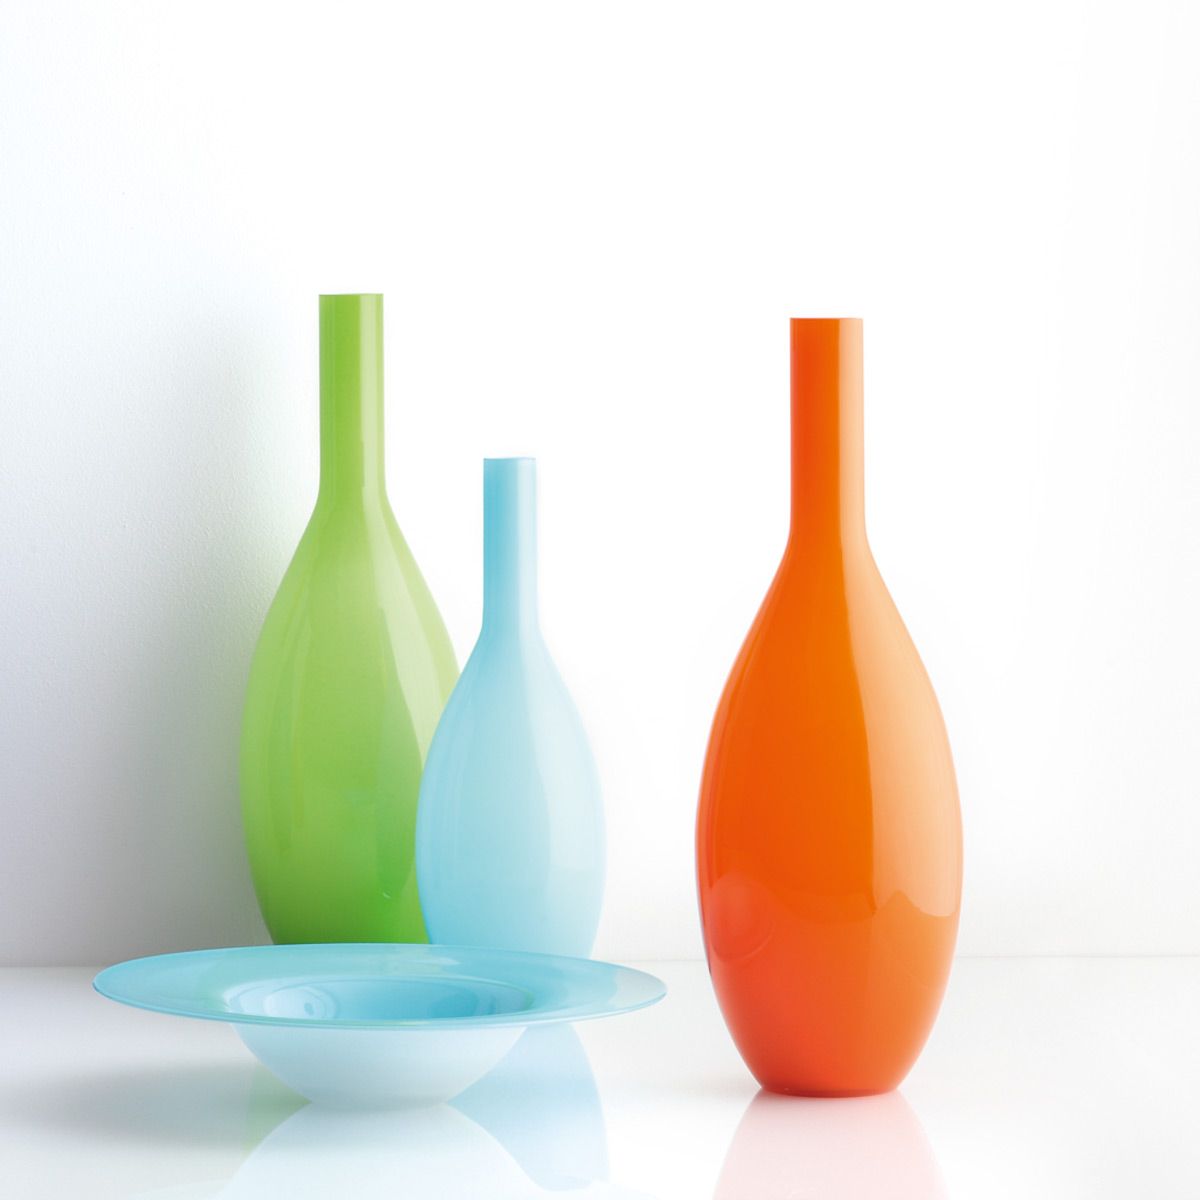 Murano glass galley Art of Venice: 12 years on the web with vases